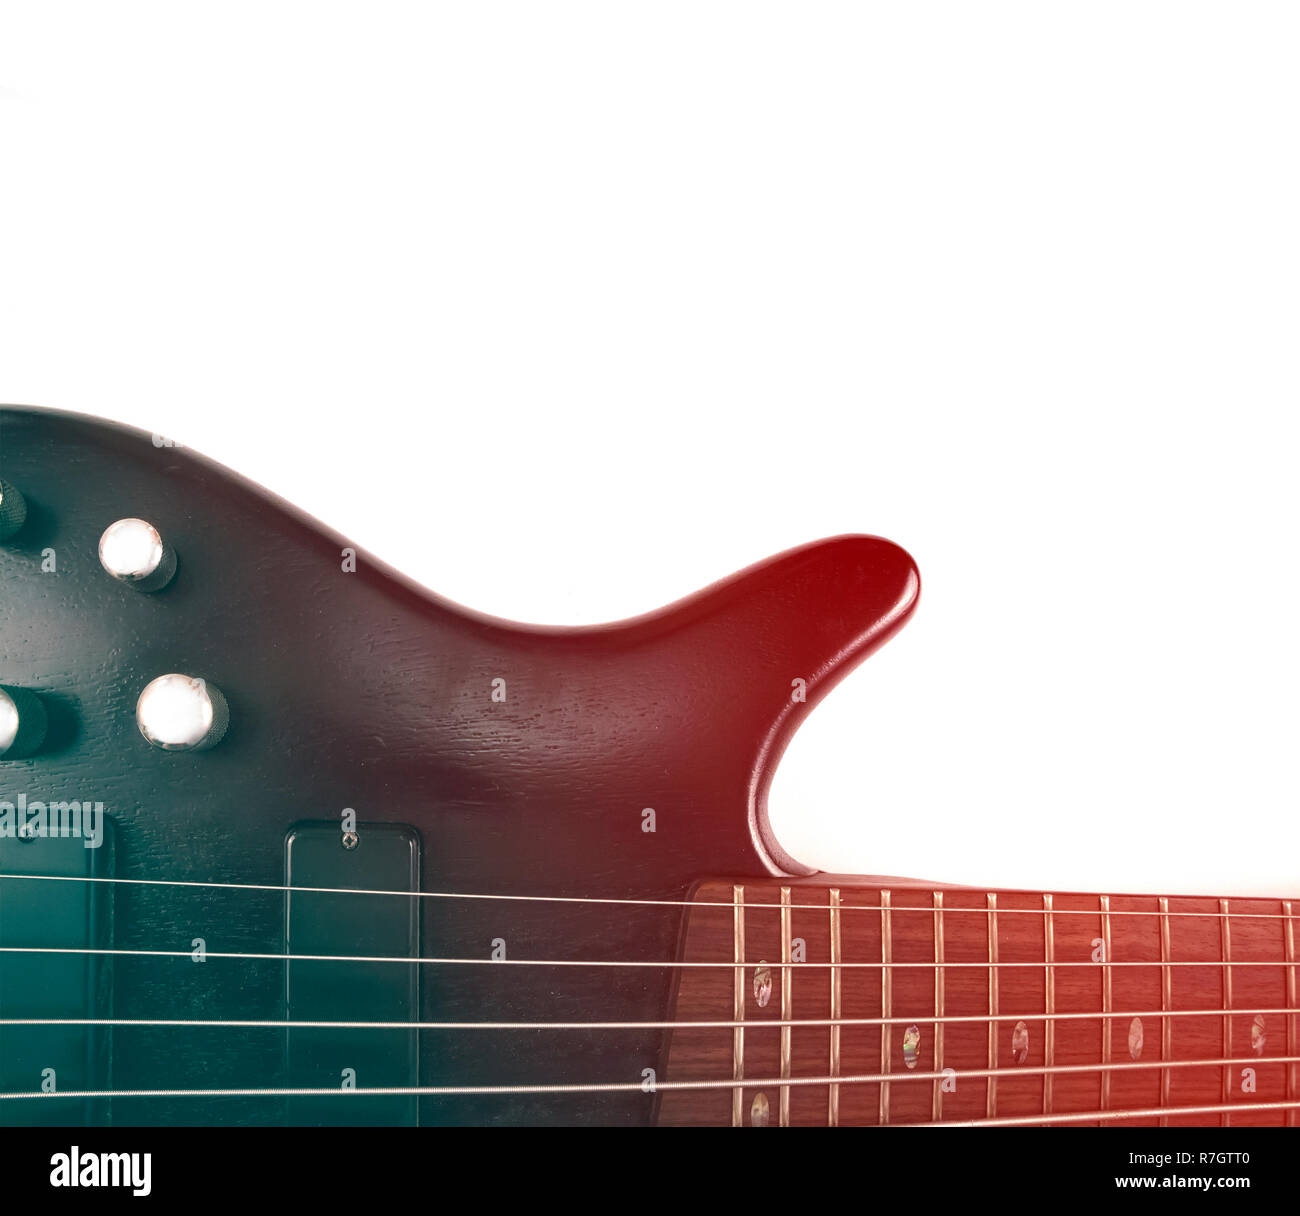 Rosewood bass guitar deck and neck with frets and strings with gradient effect isolated on white Stock Photo